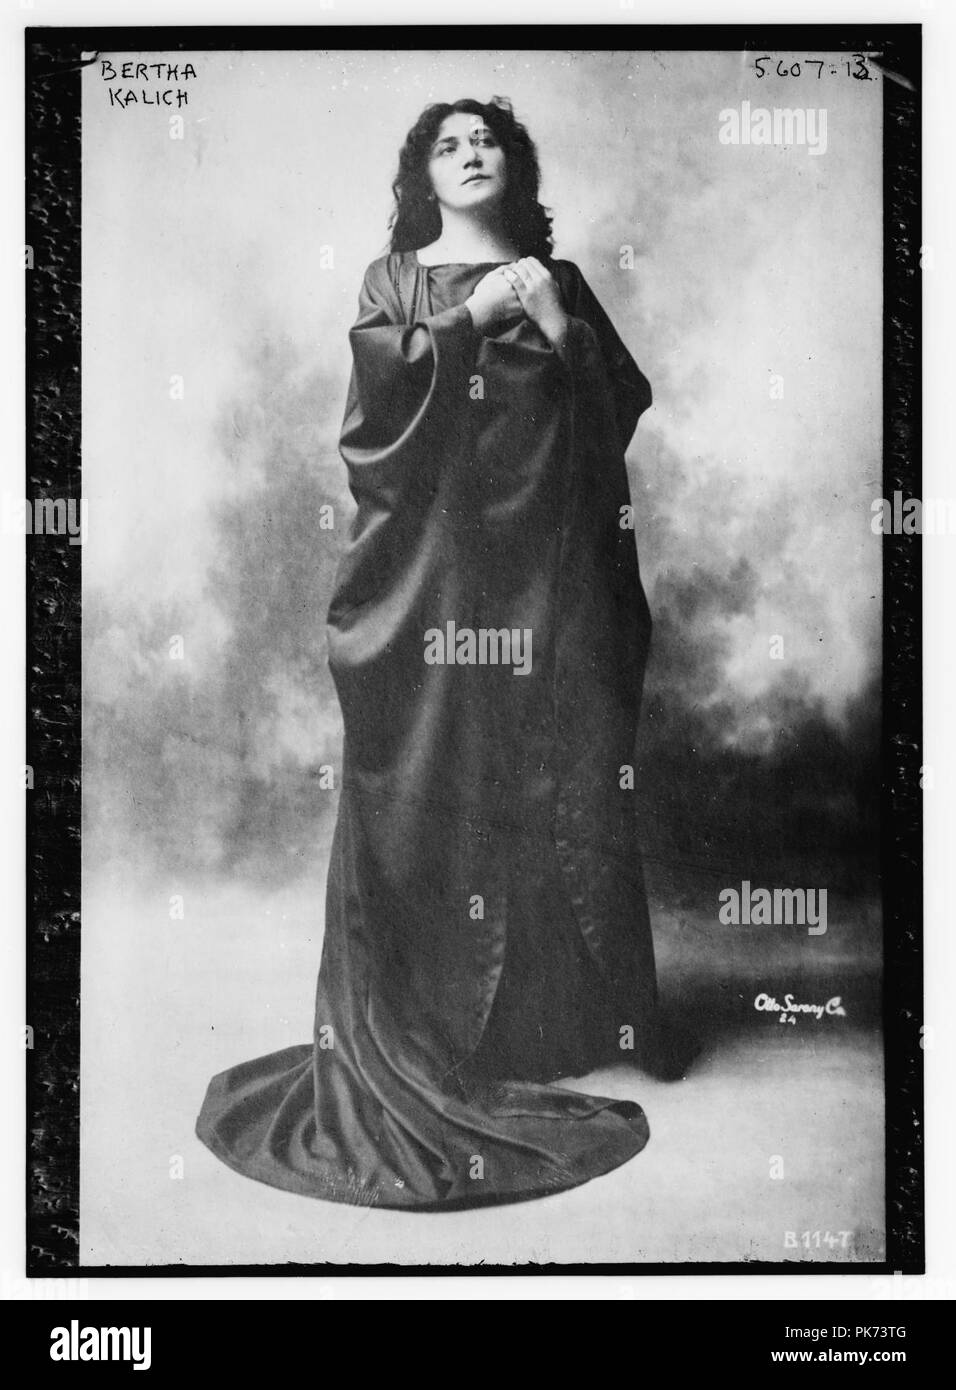 Bertha Kalich Bertha Kalich new images